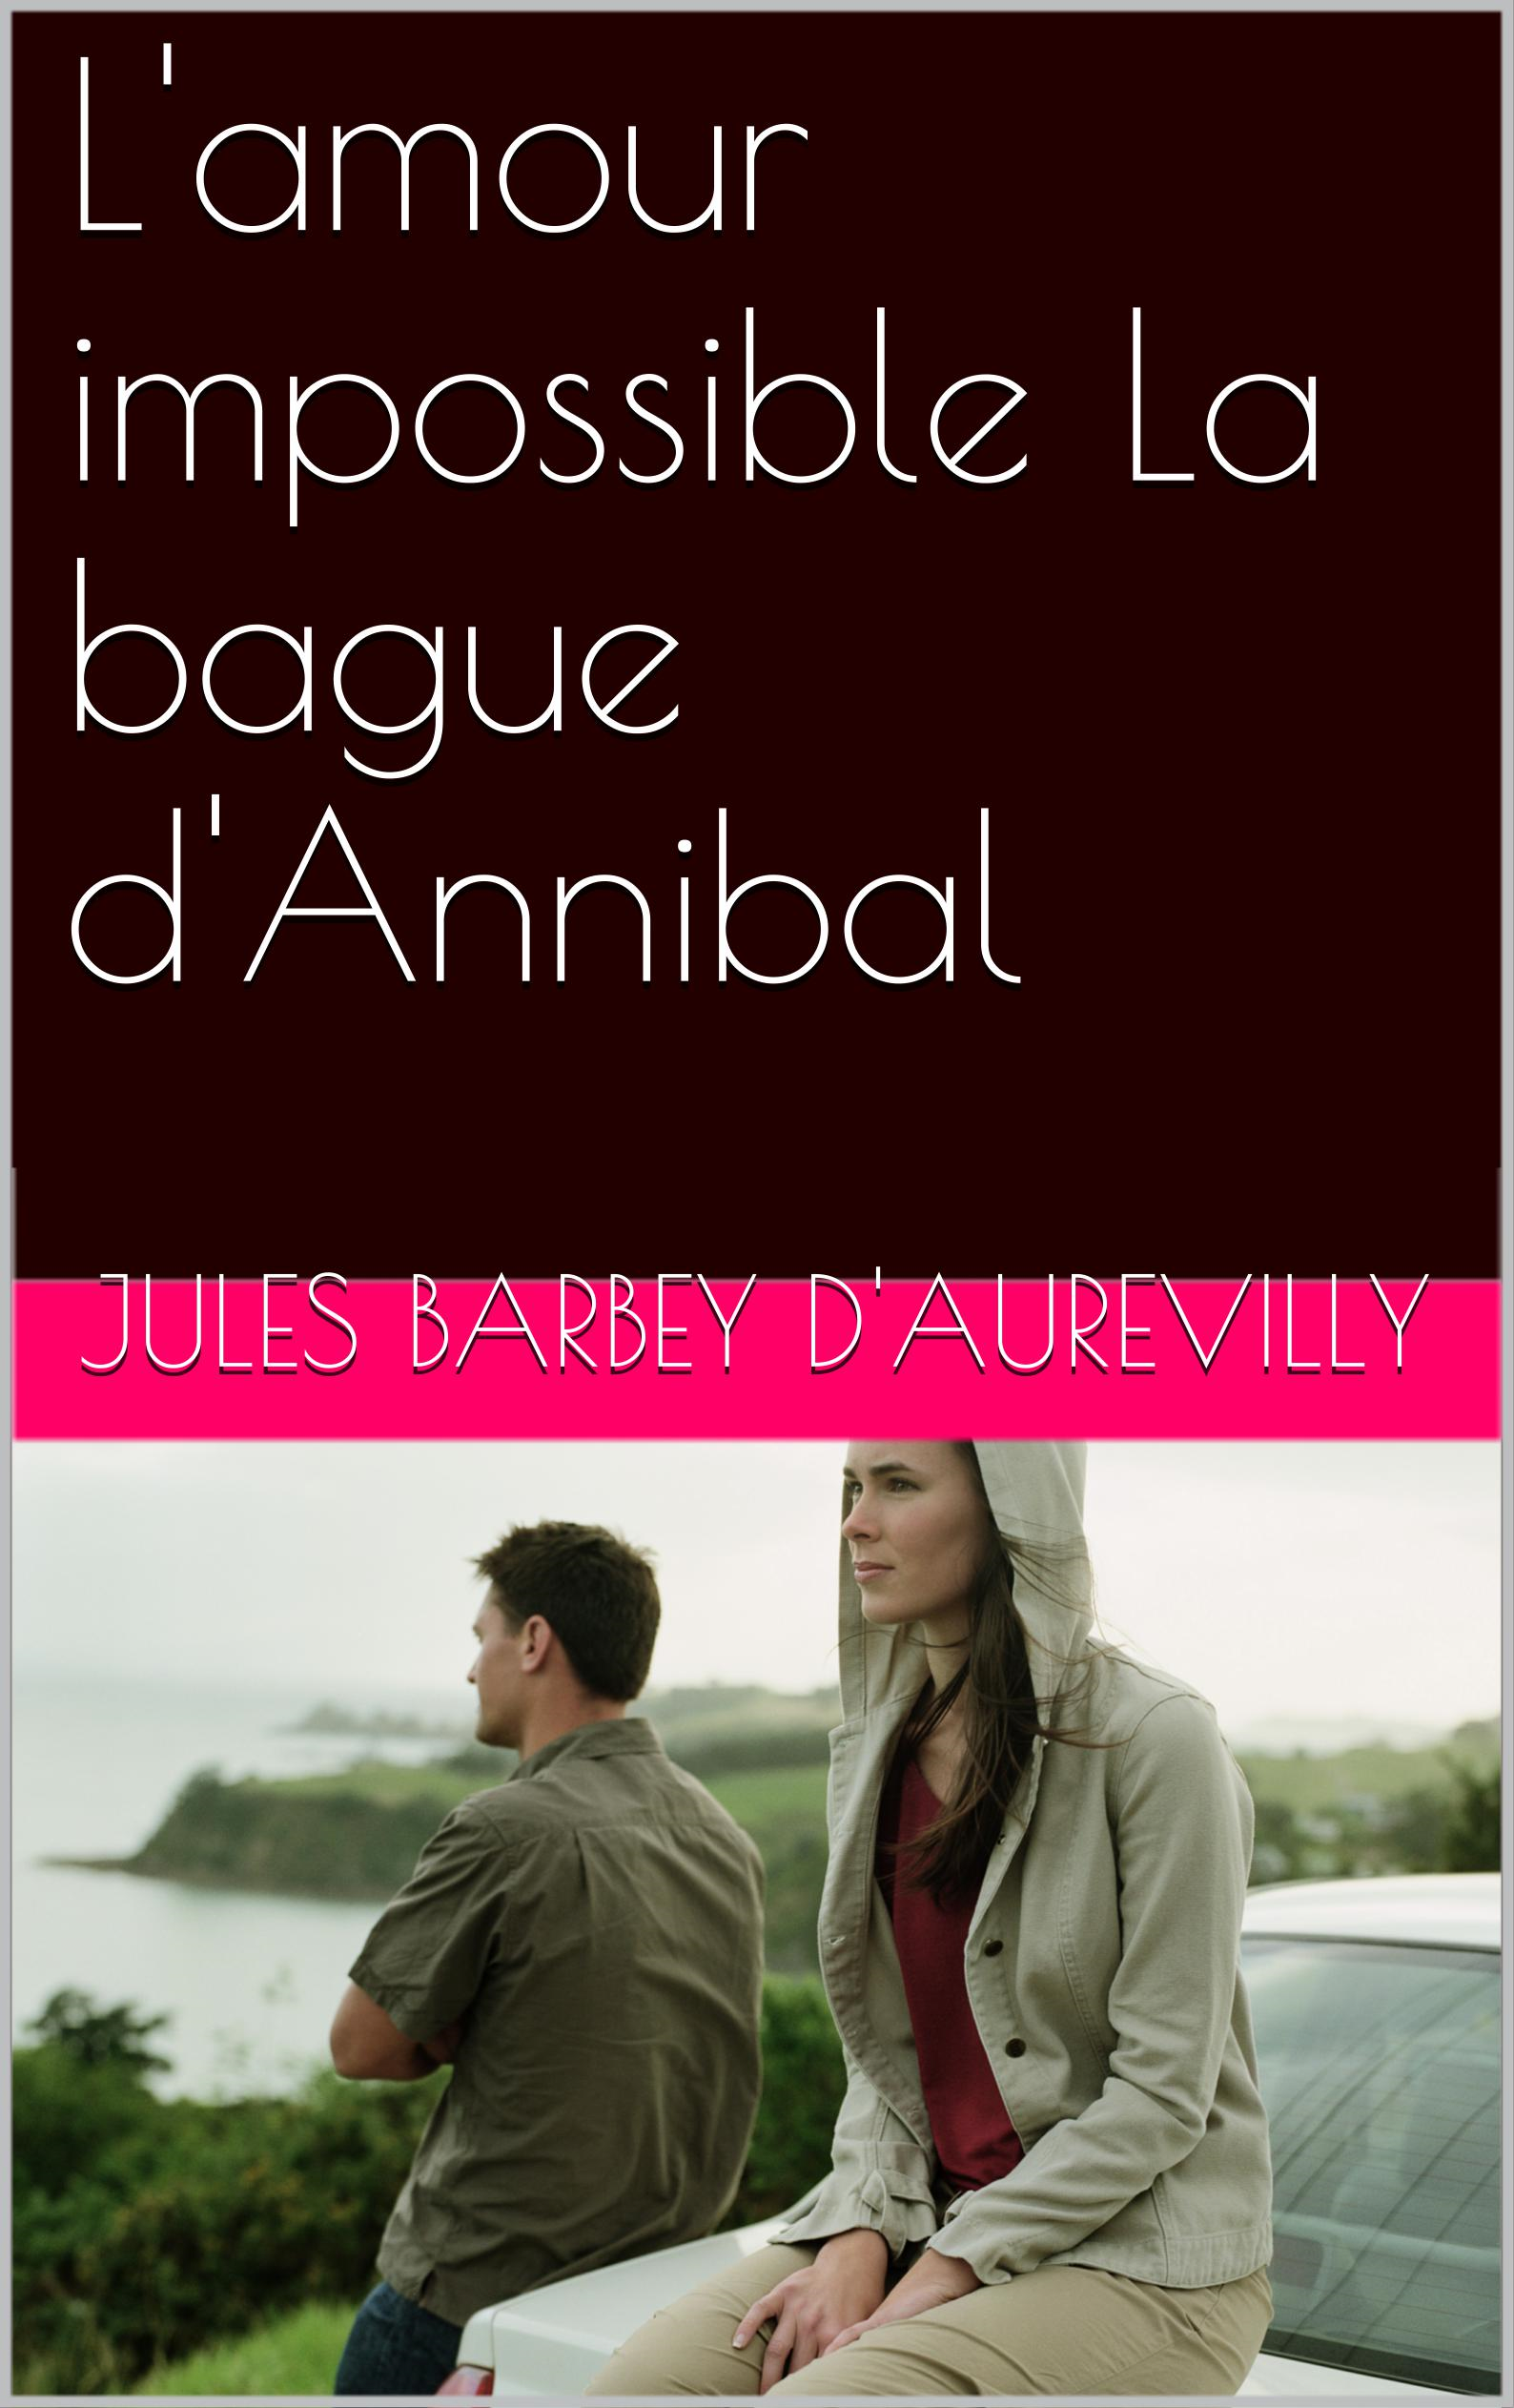 Jules Barbey d'Aurevilly - L'amour impossible  La bague d'Annibal